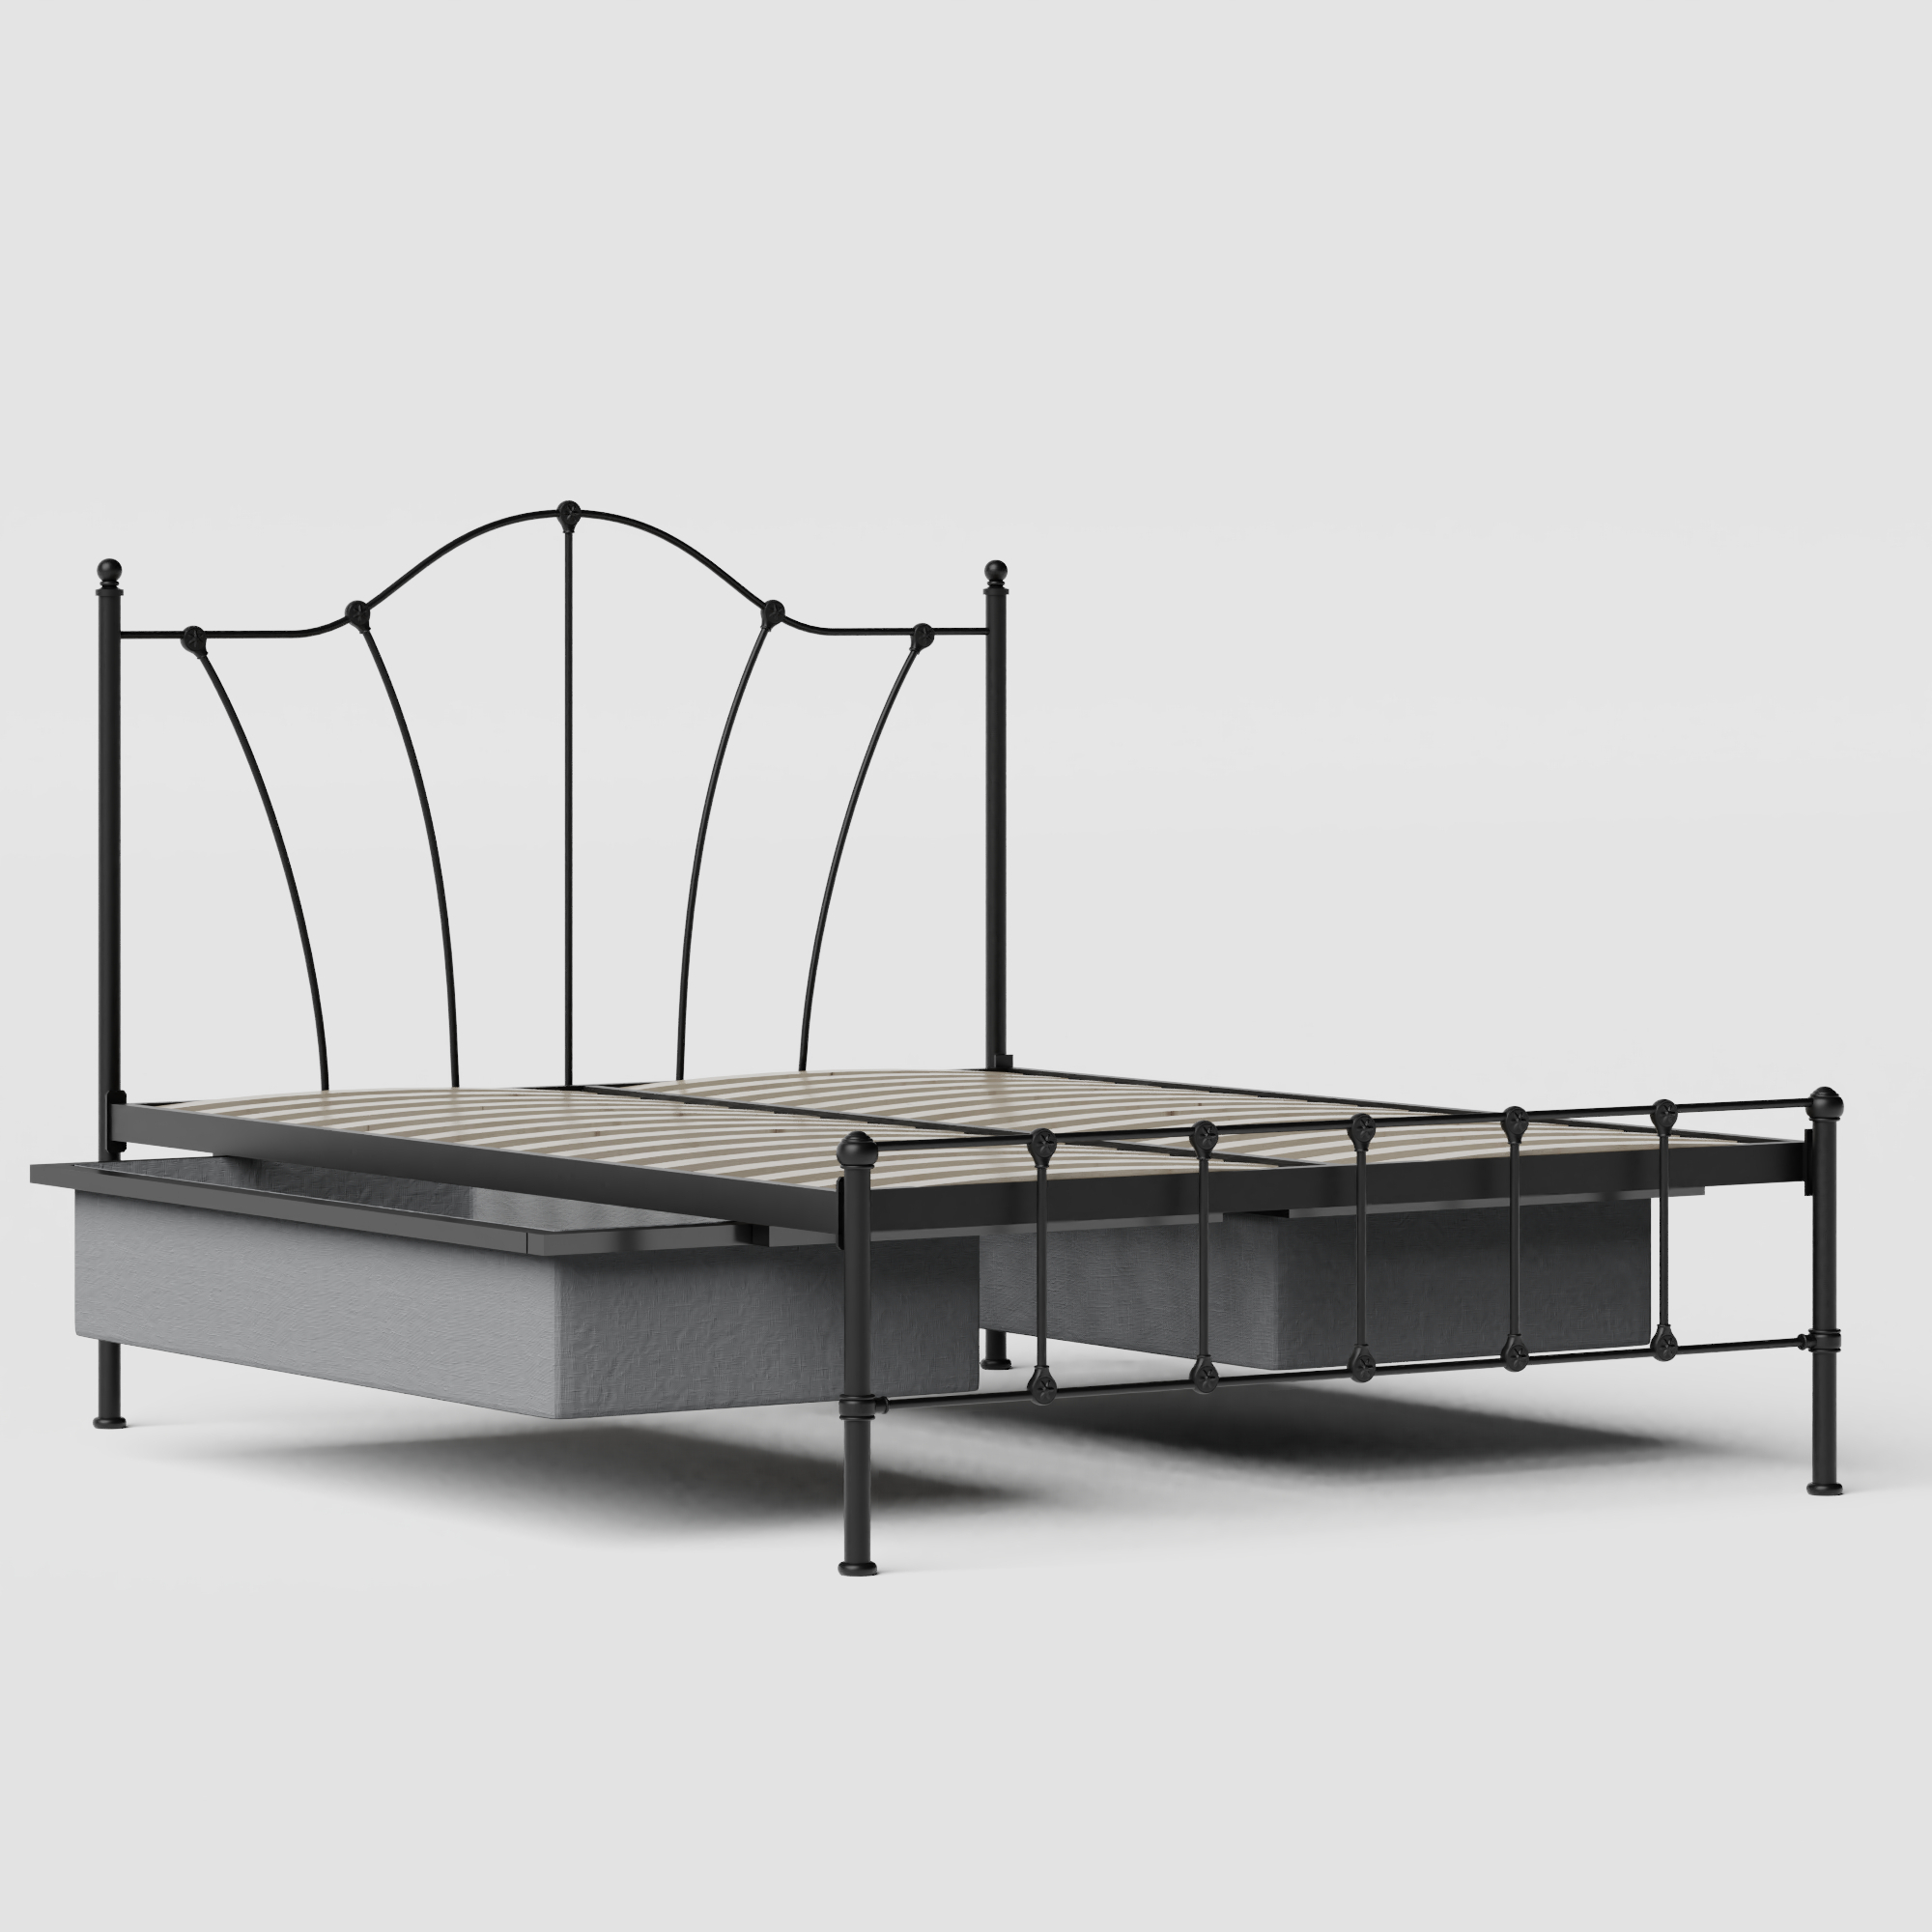 Claudia iron/metal bed in black with drawers